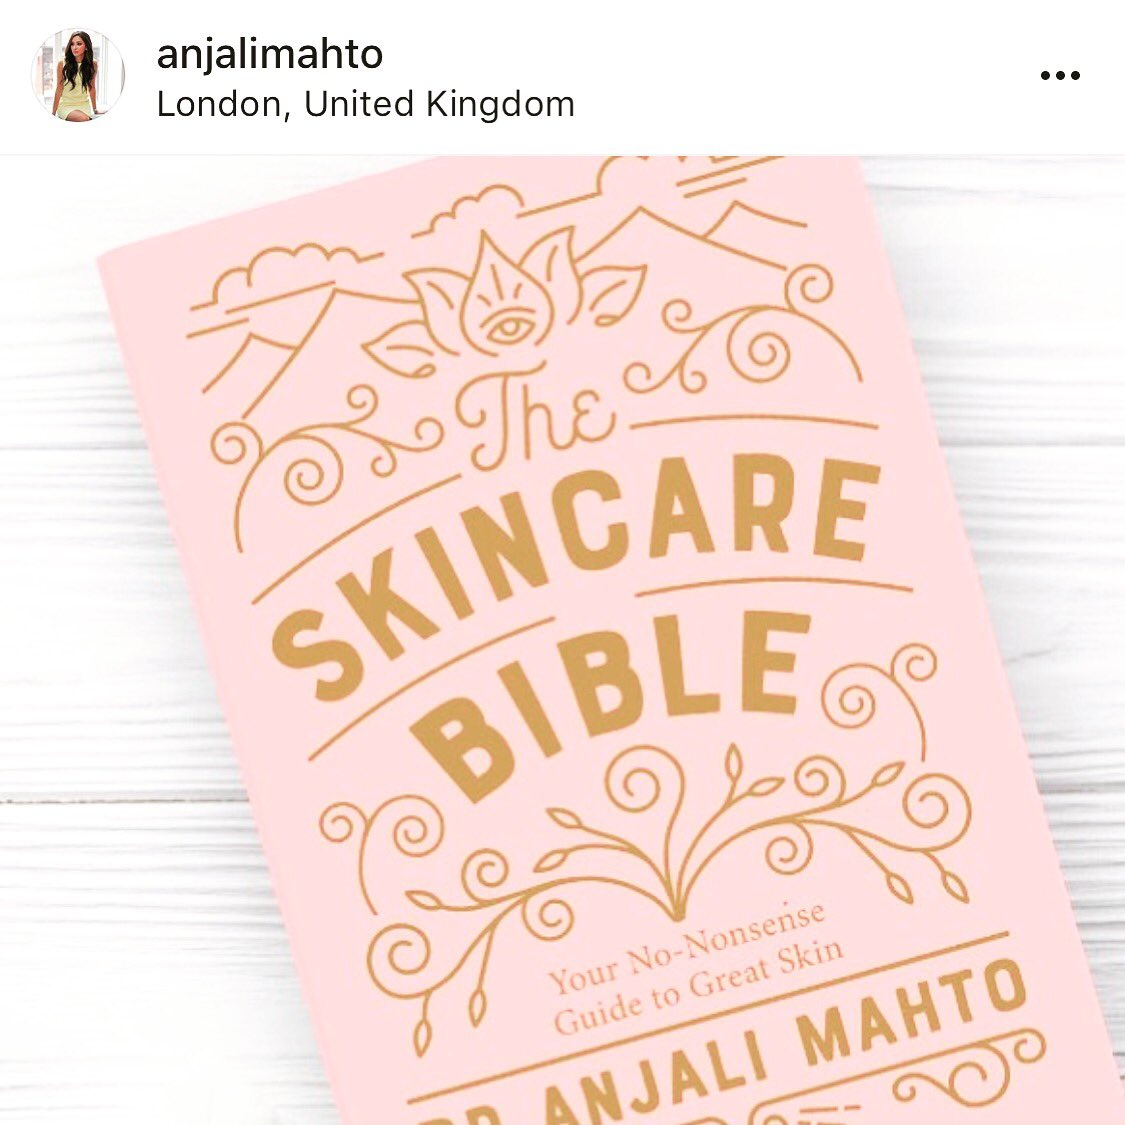 Arti mahto welshtealeaf twitter congratulations to dranjalimahto on the launch of her new book the skincare bible we hear its a great read stopboris Gallery